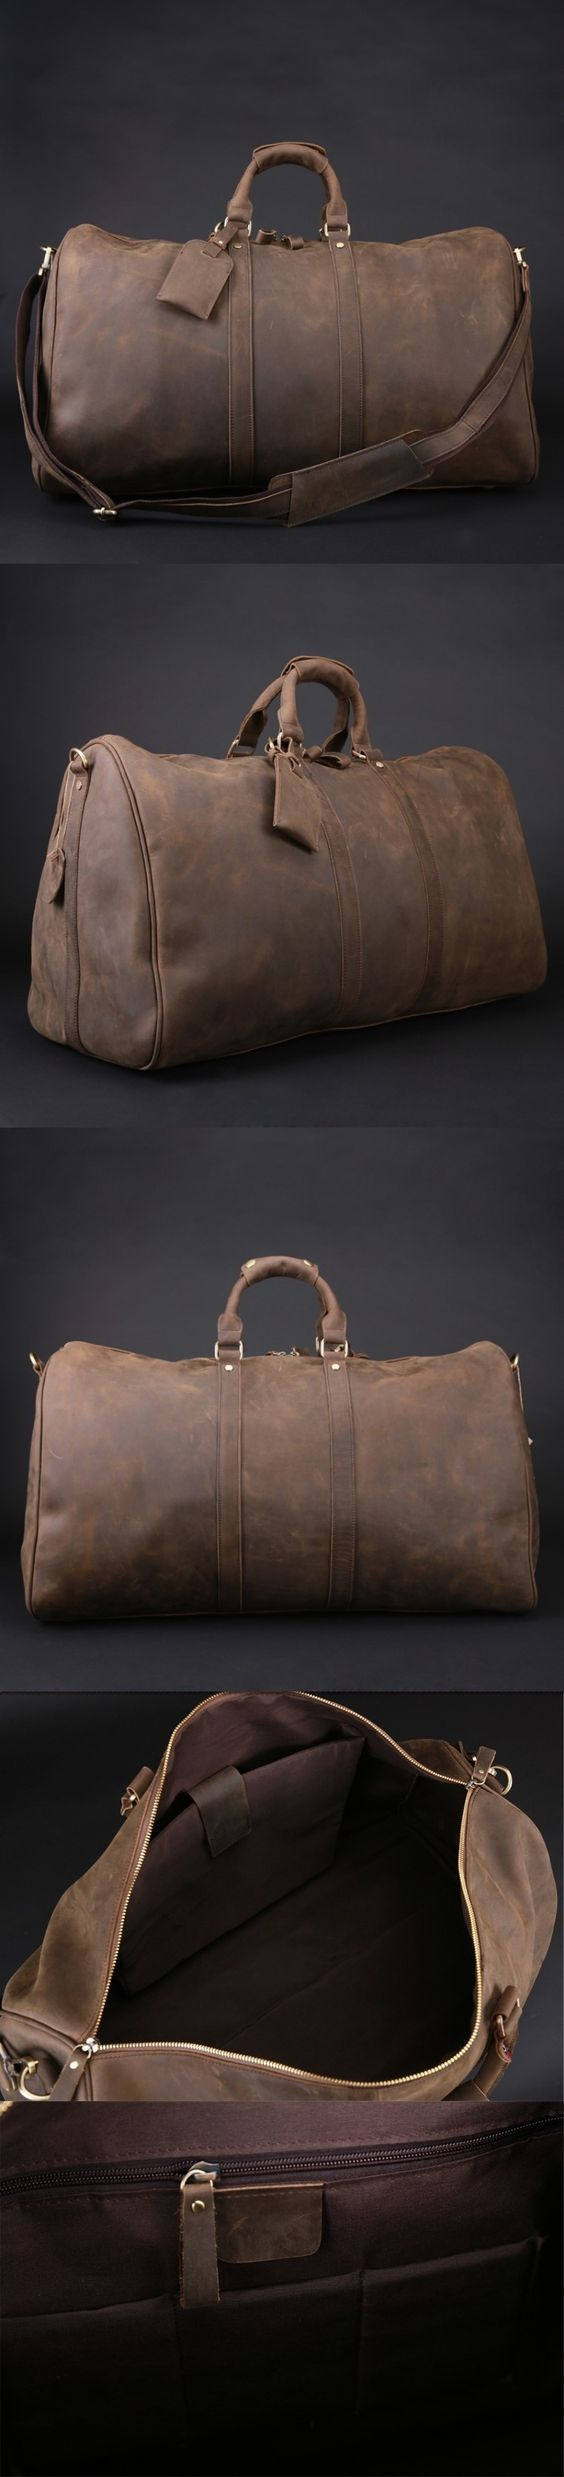 Men's Vintage Leather Travel Bag / Luggage / Duffle Bag / Sport Bag Gym Bag / Weekend Bag